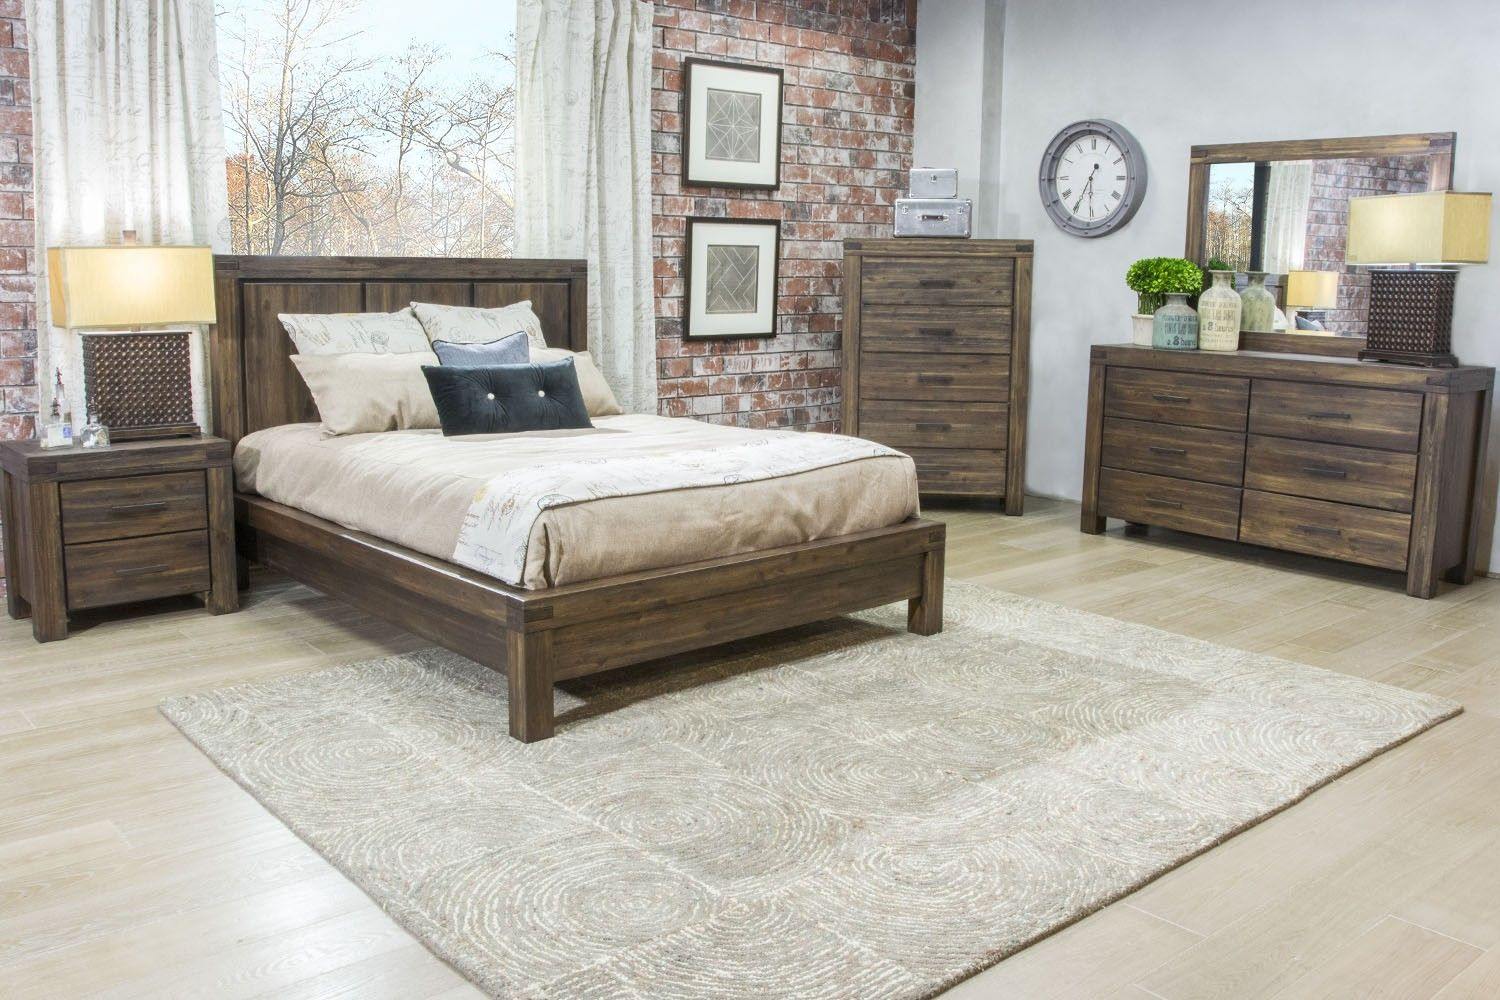 The Meadow Bedroom combines country and contemporary